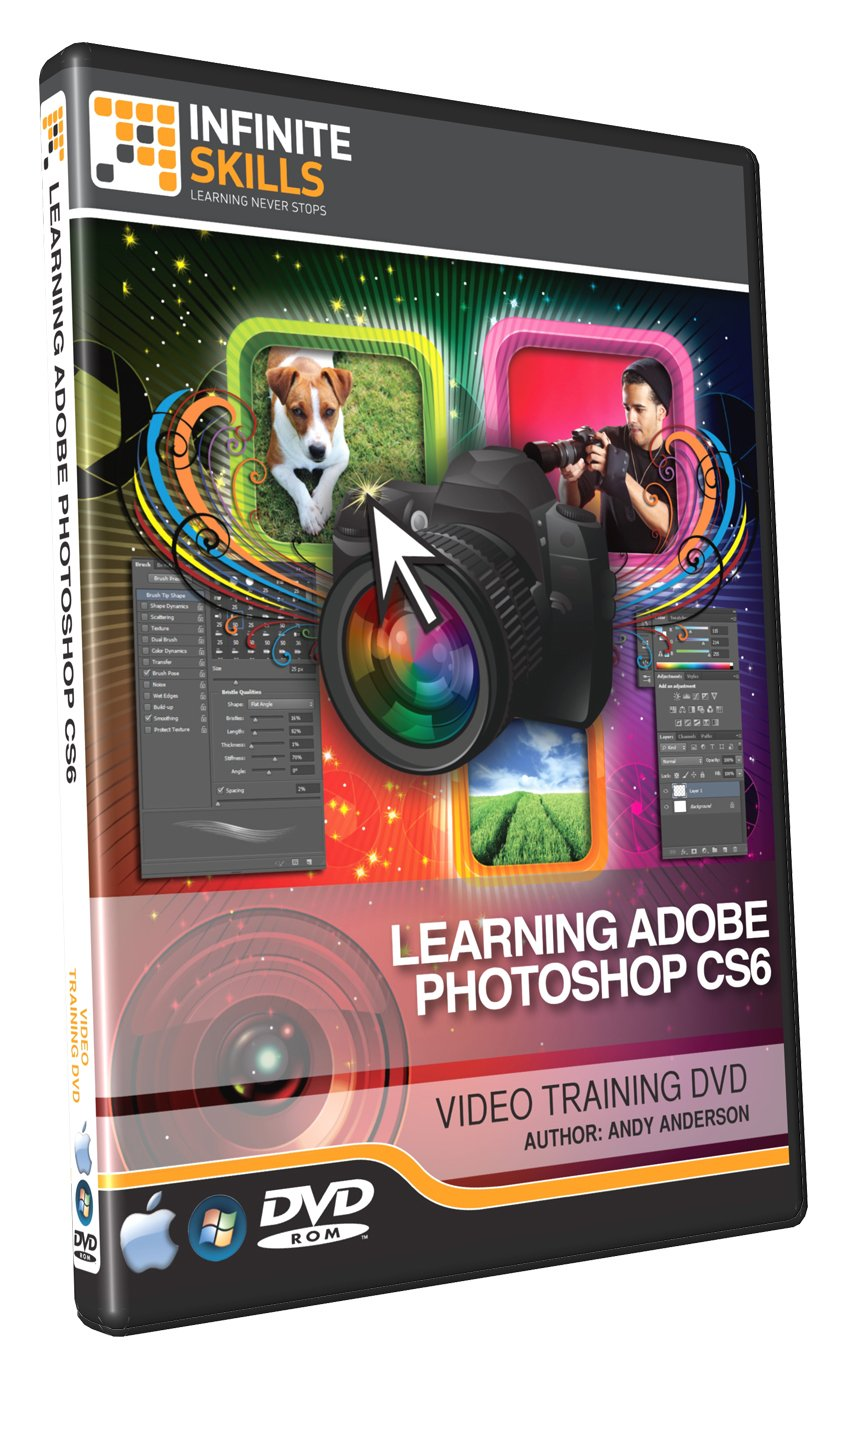 Learning photoshop cs6 training dvd tutorial video amazon learning photoshop cs6 training dvd tutorial video amazon software baditri Choice Image